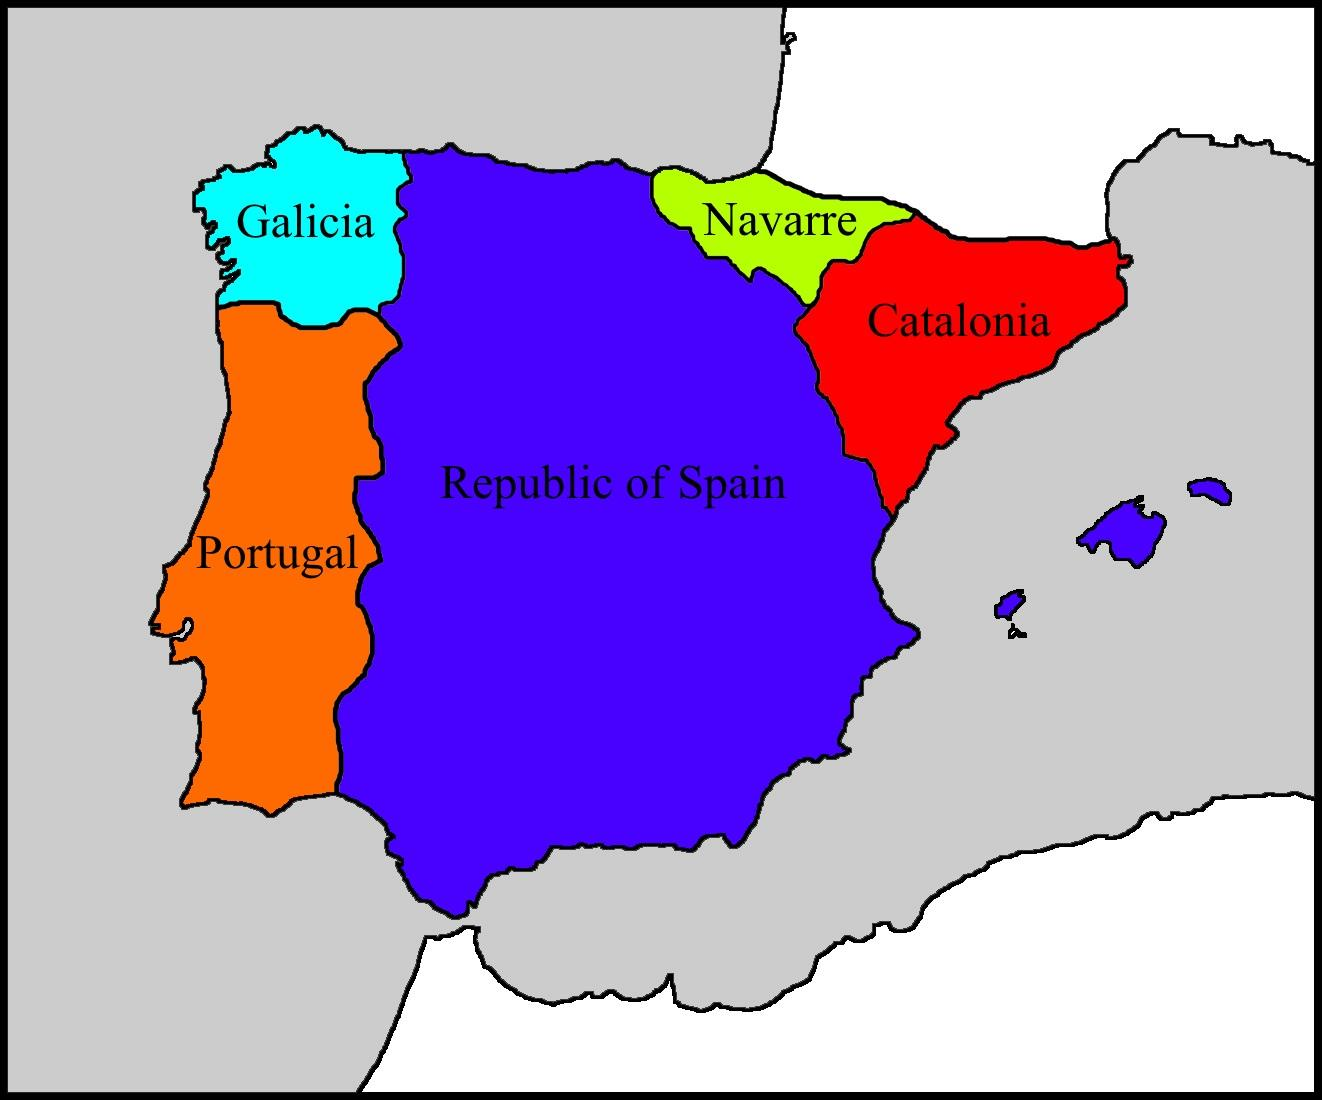 Simple Map Of Iberia Today With A Republican Victory In